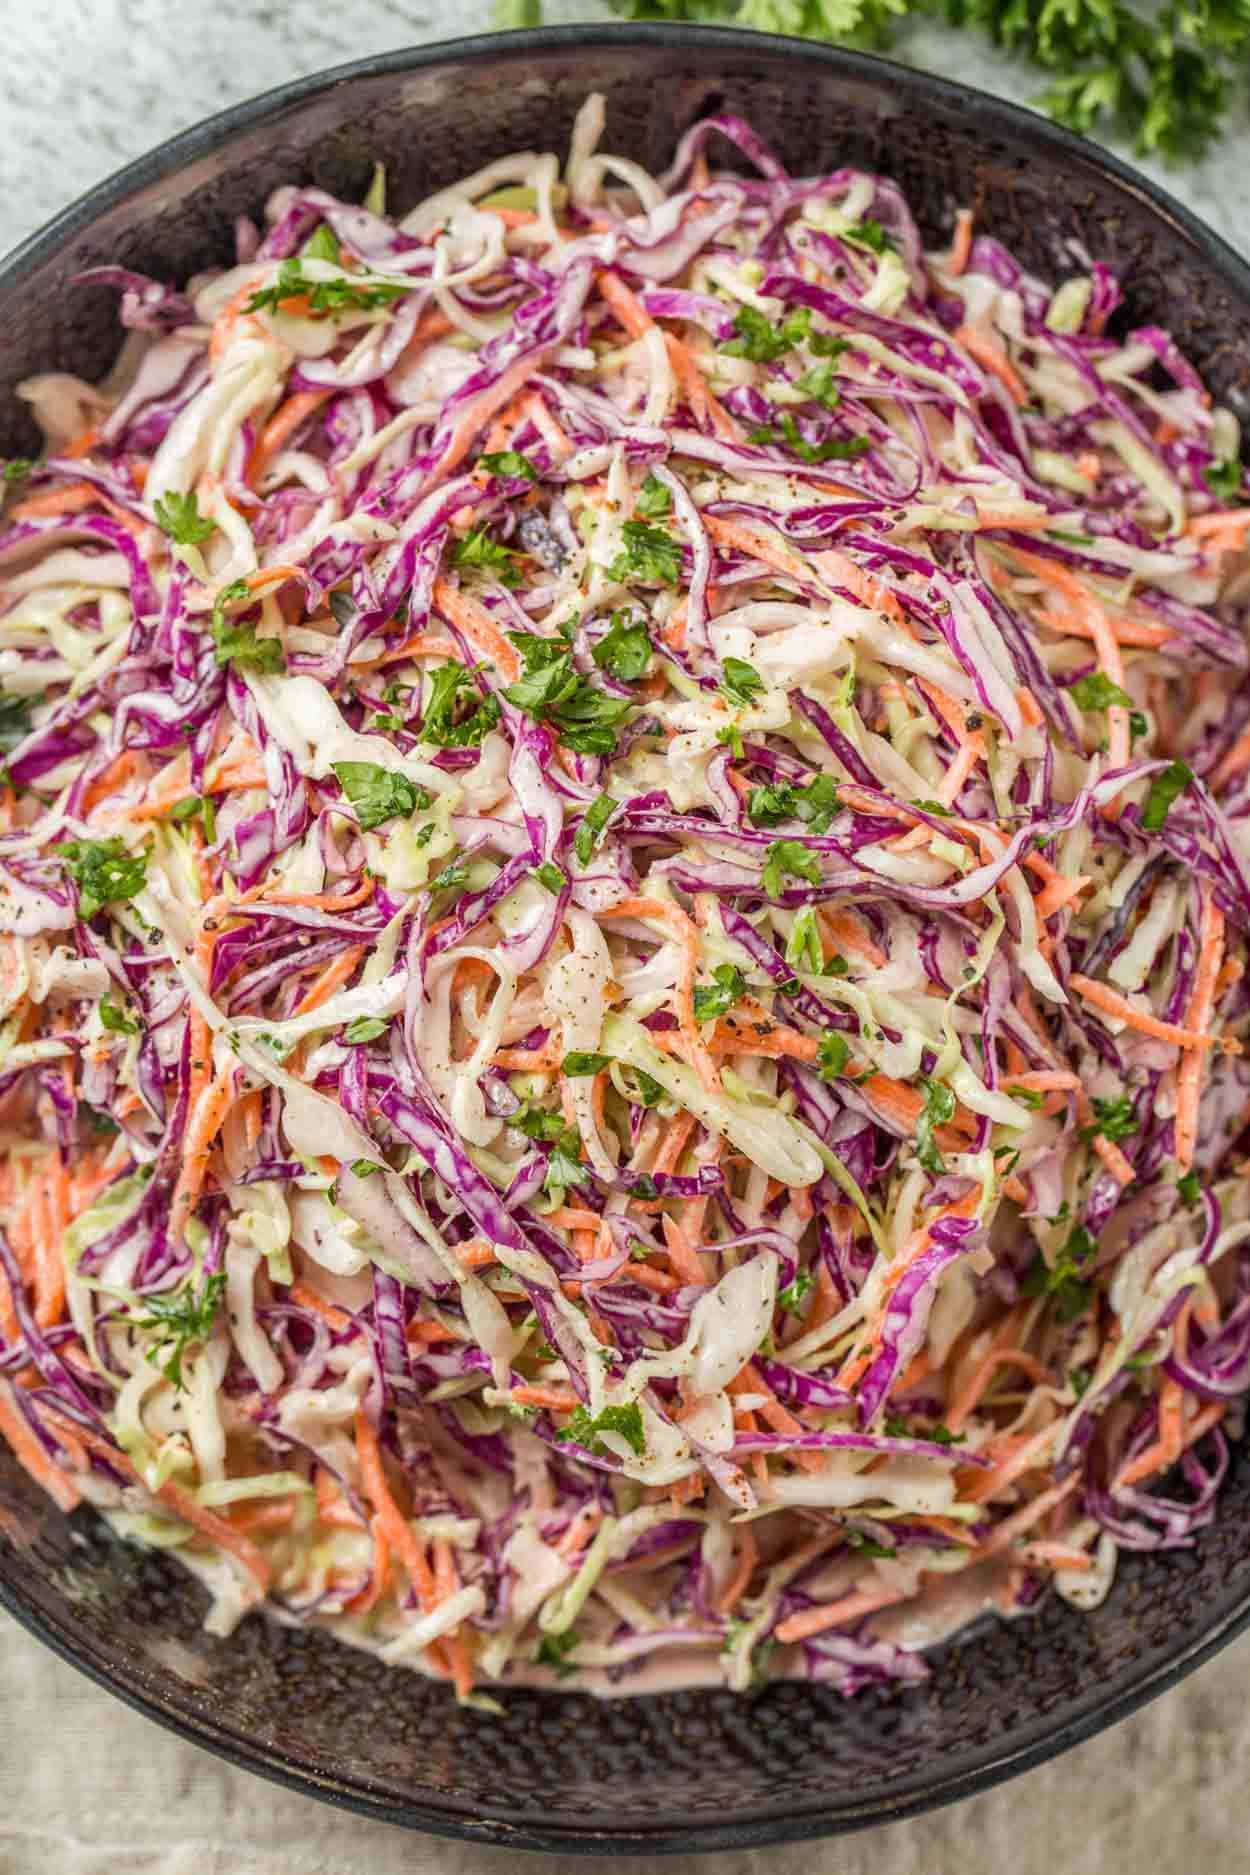 Coleslaw Recipe With Coleslaw Dressing Valentina S Corner